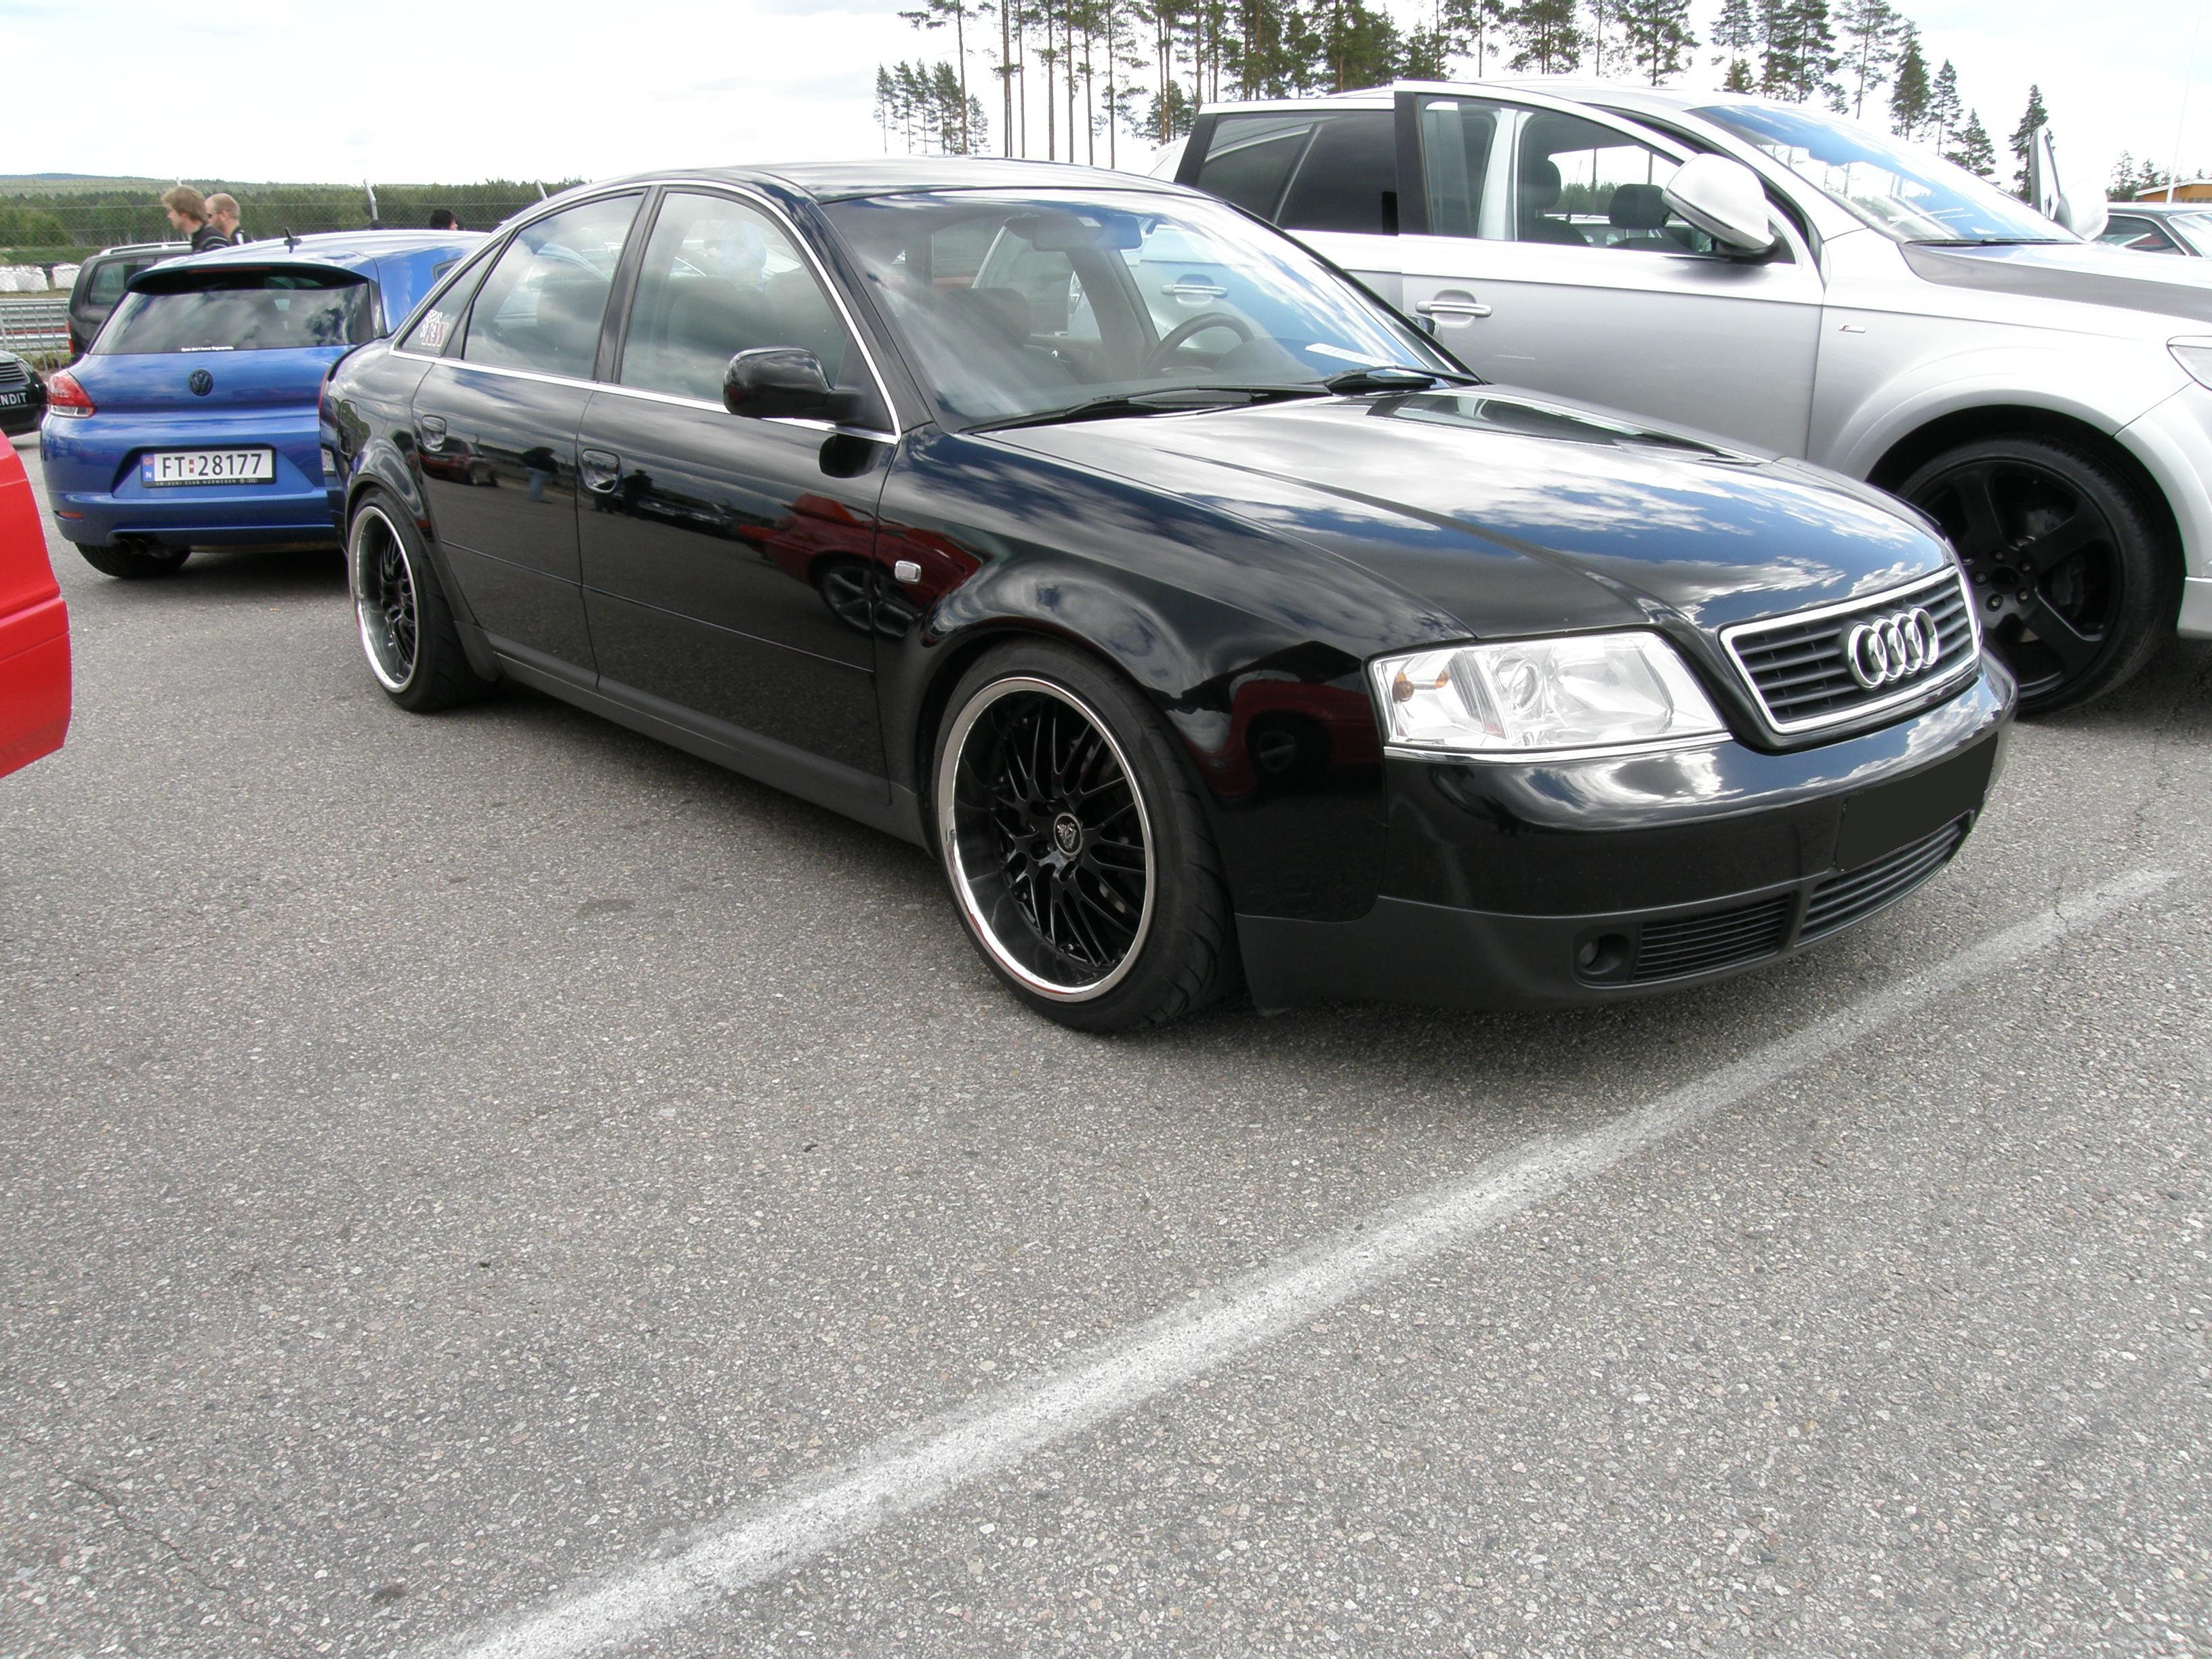 audi-quattro 1998 audi a6 specs, photos, modification info at